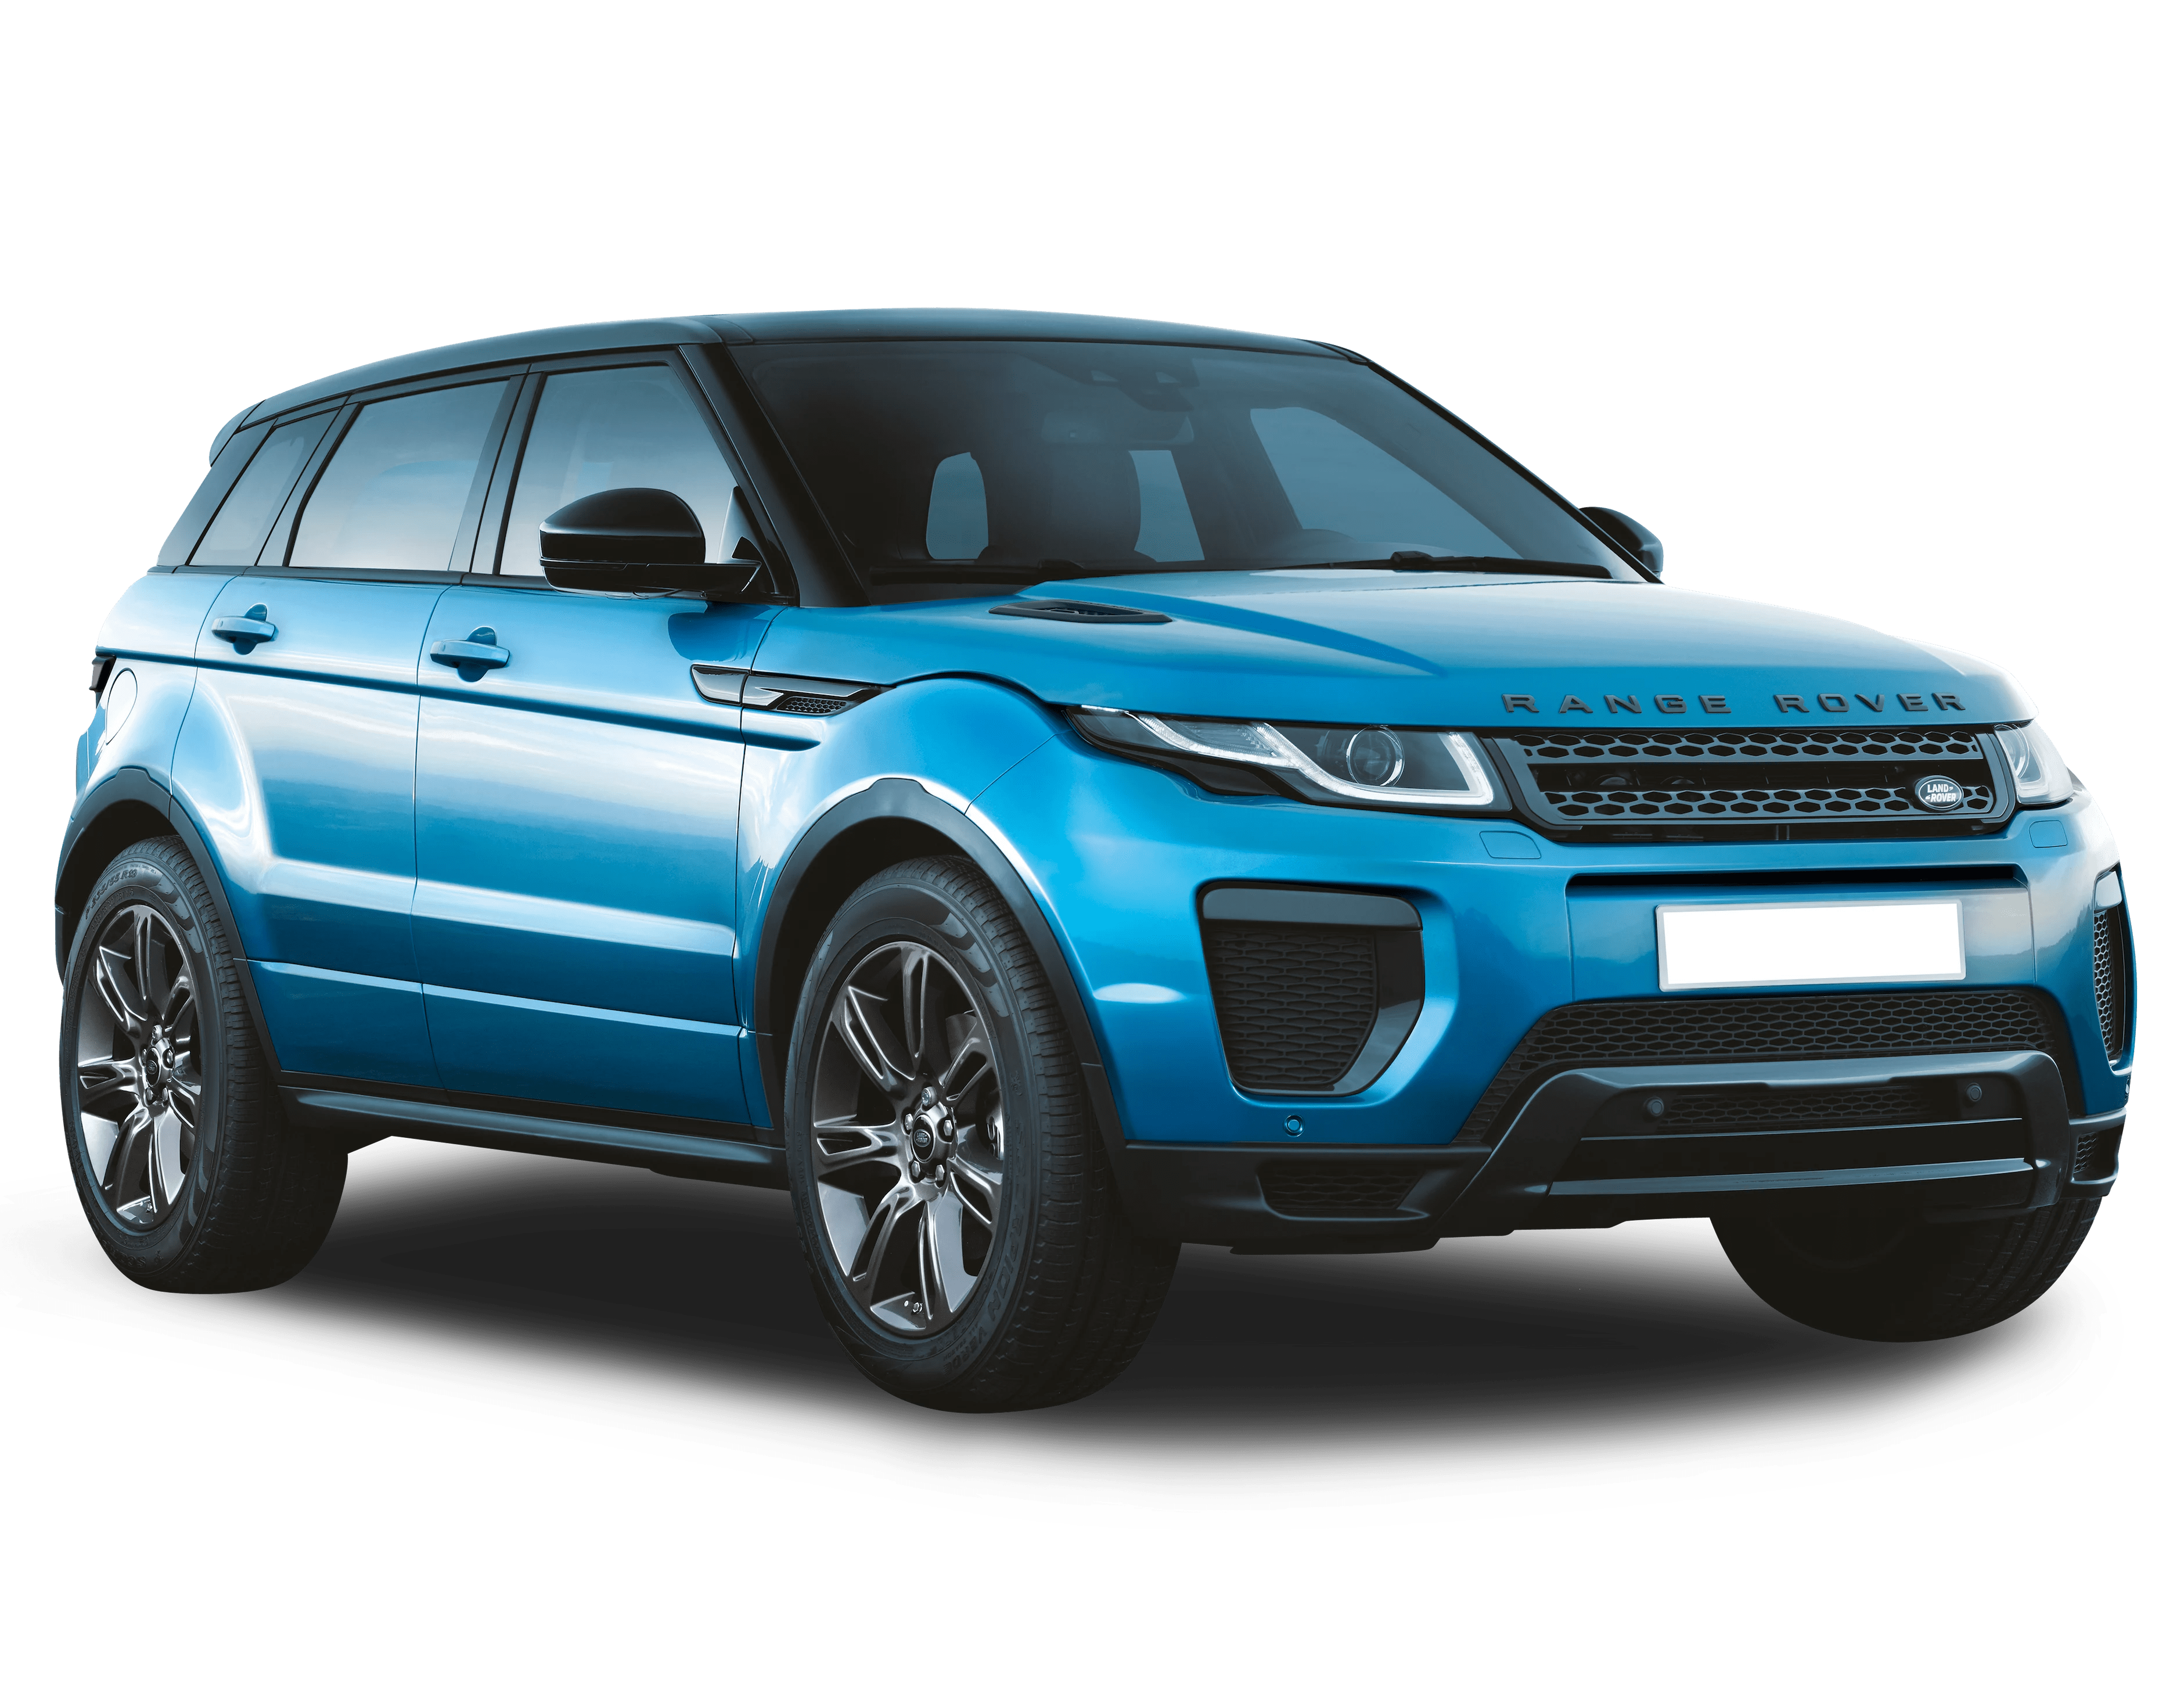 Range Rover Evoque Reviews